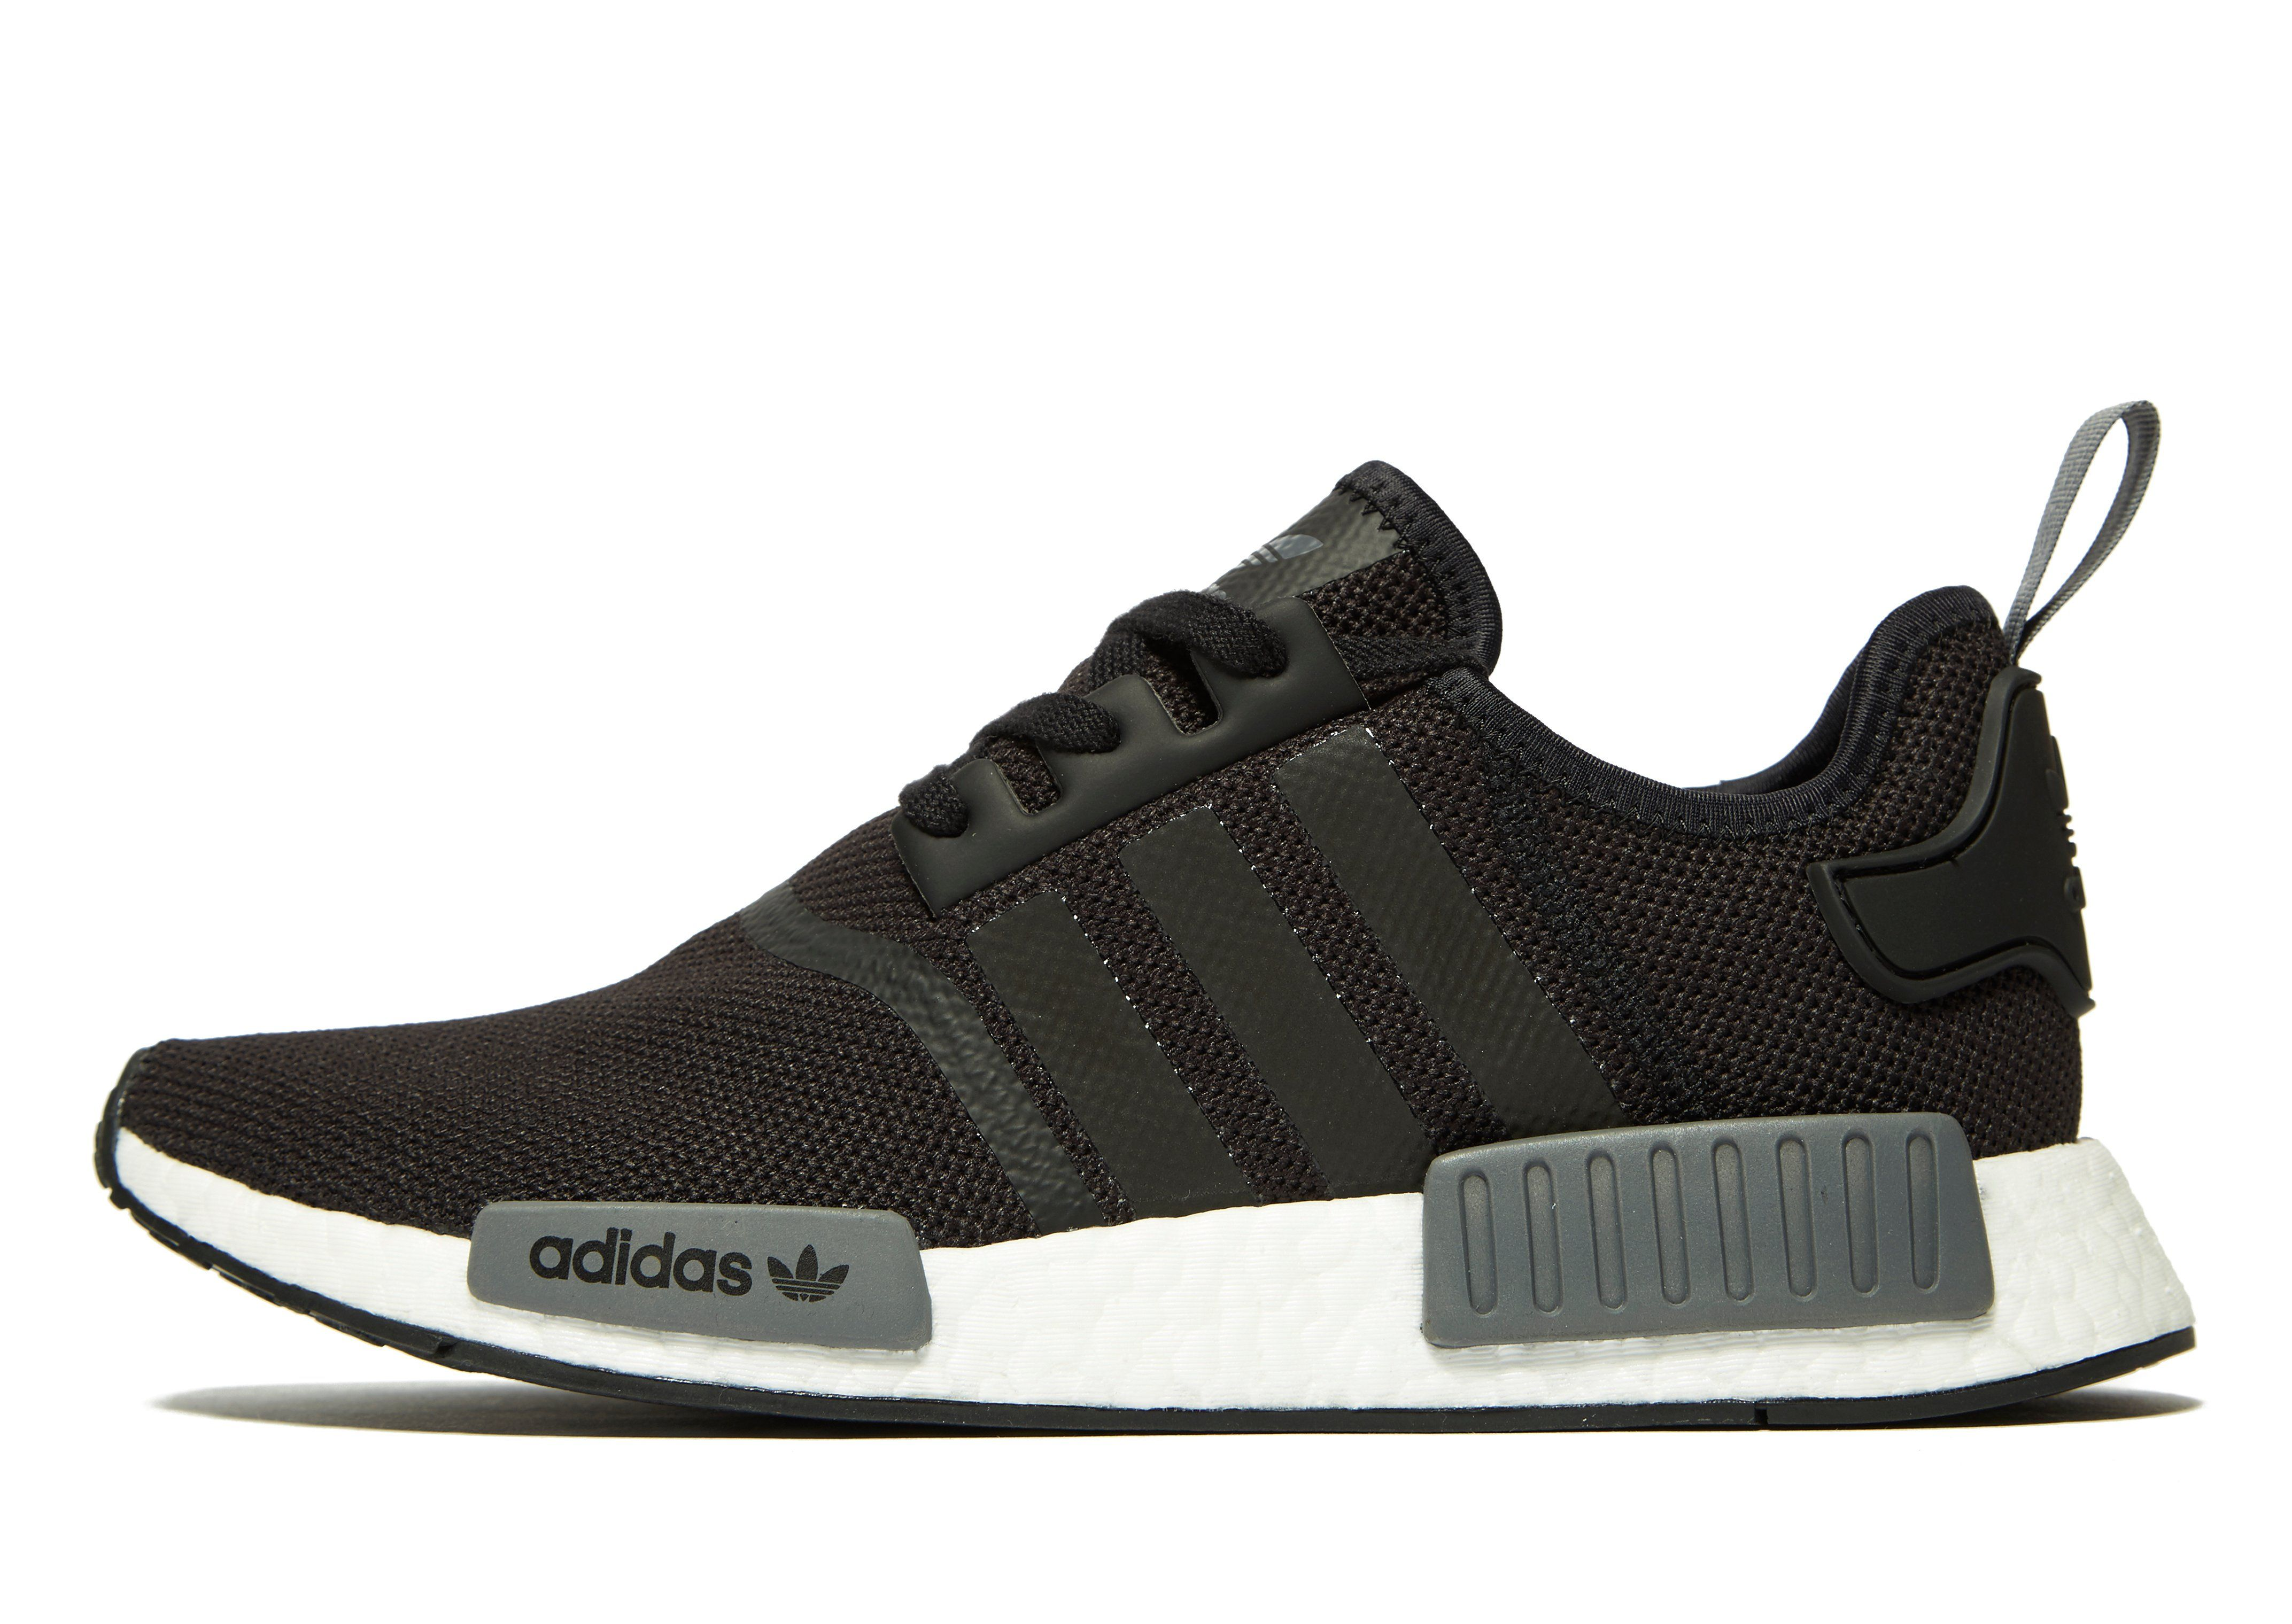 adidas shoes high tops black and white. adidas originals nmd r1 shoes high tops black and white